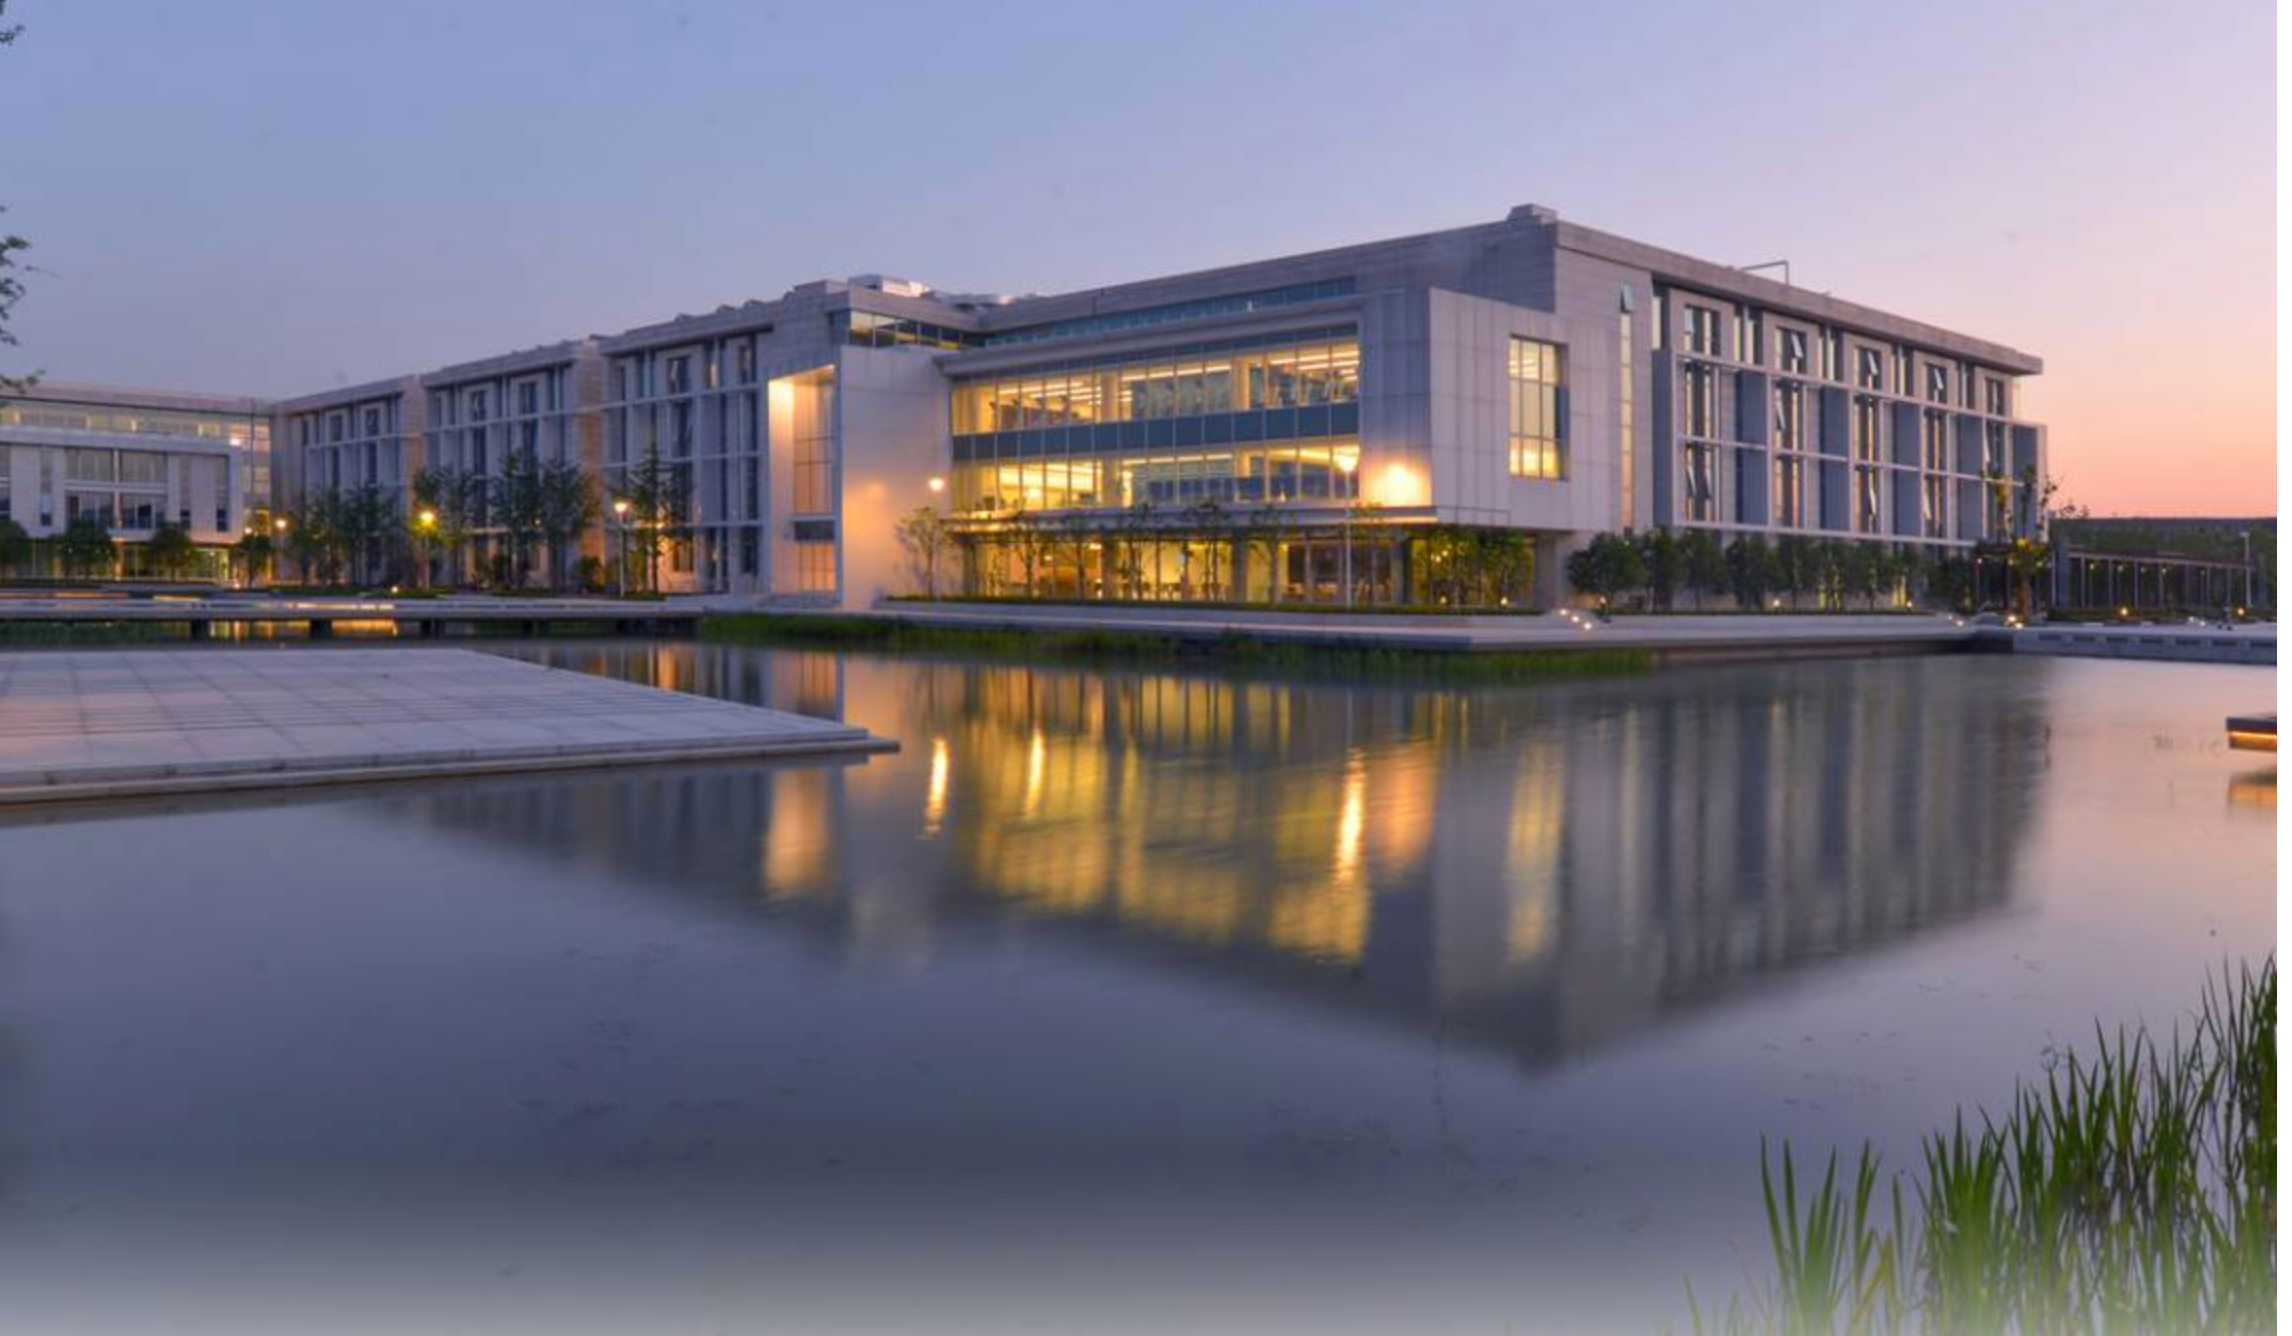 Duke Kunshan campus in China